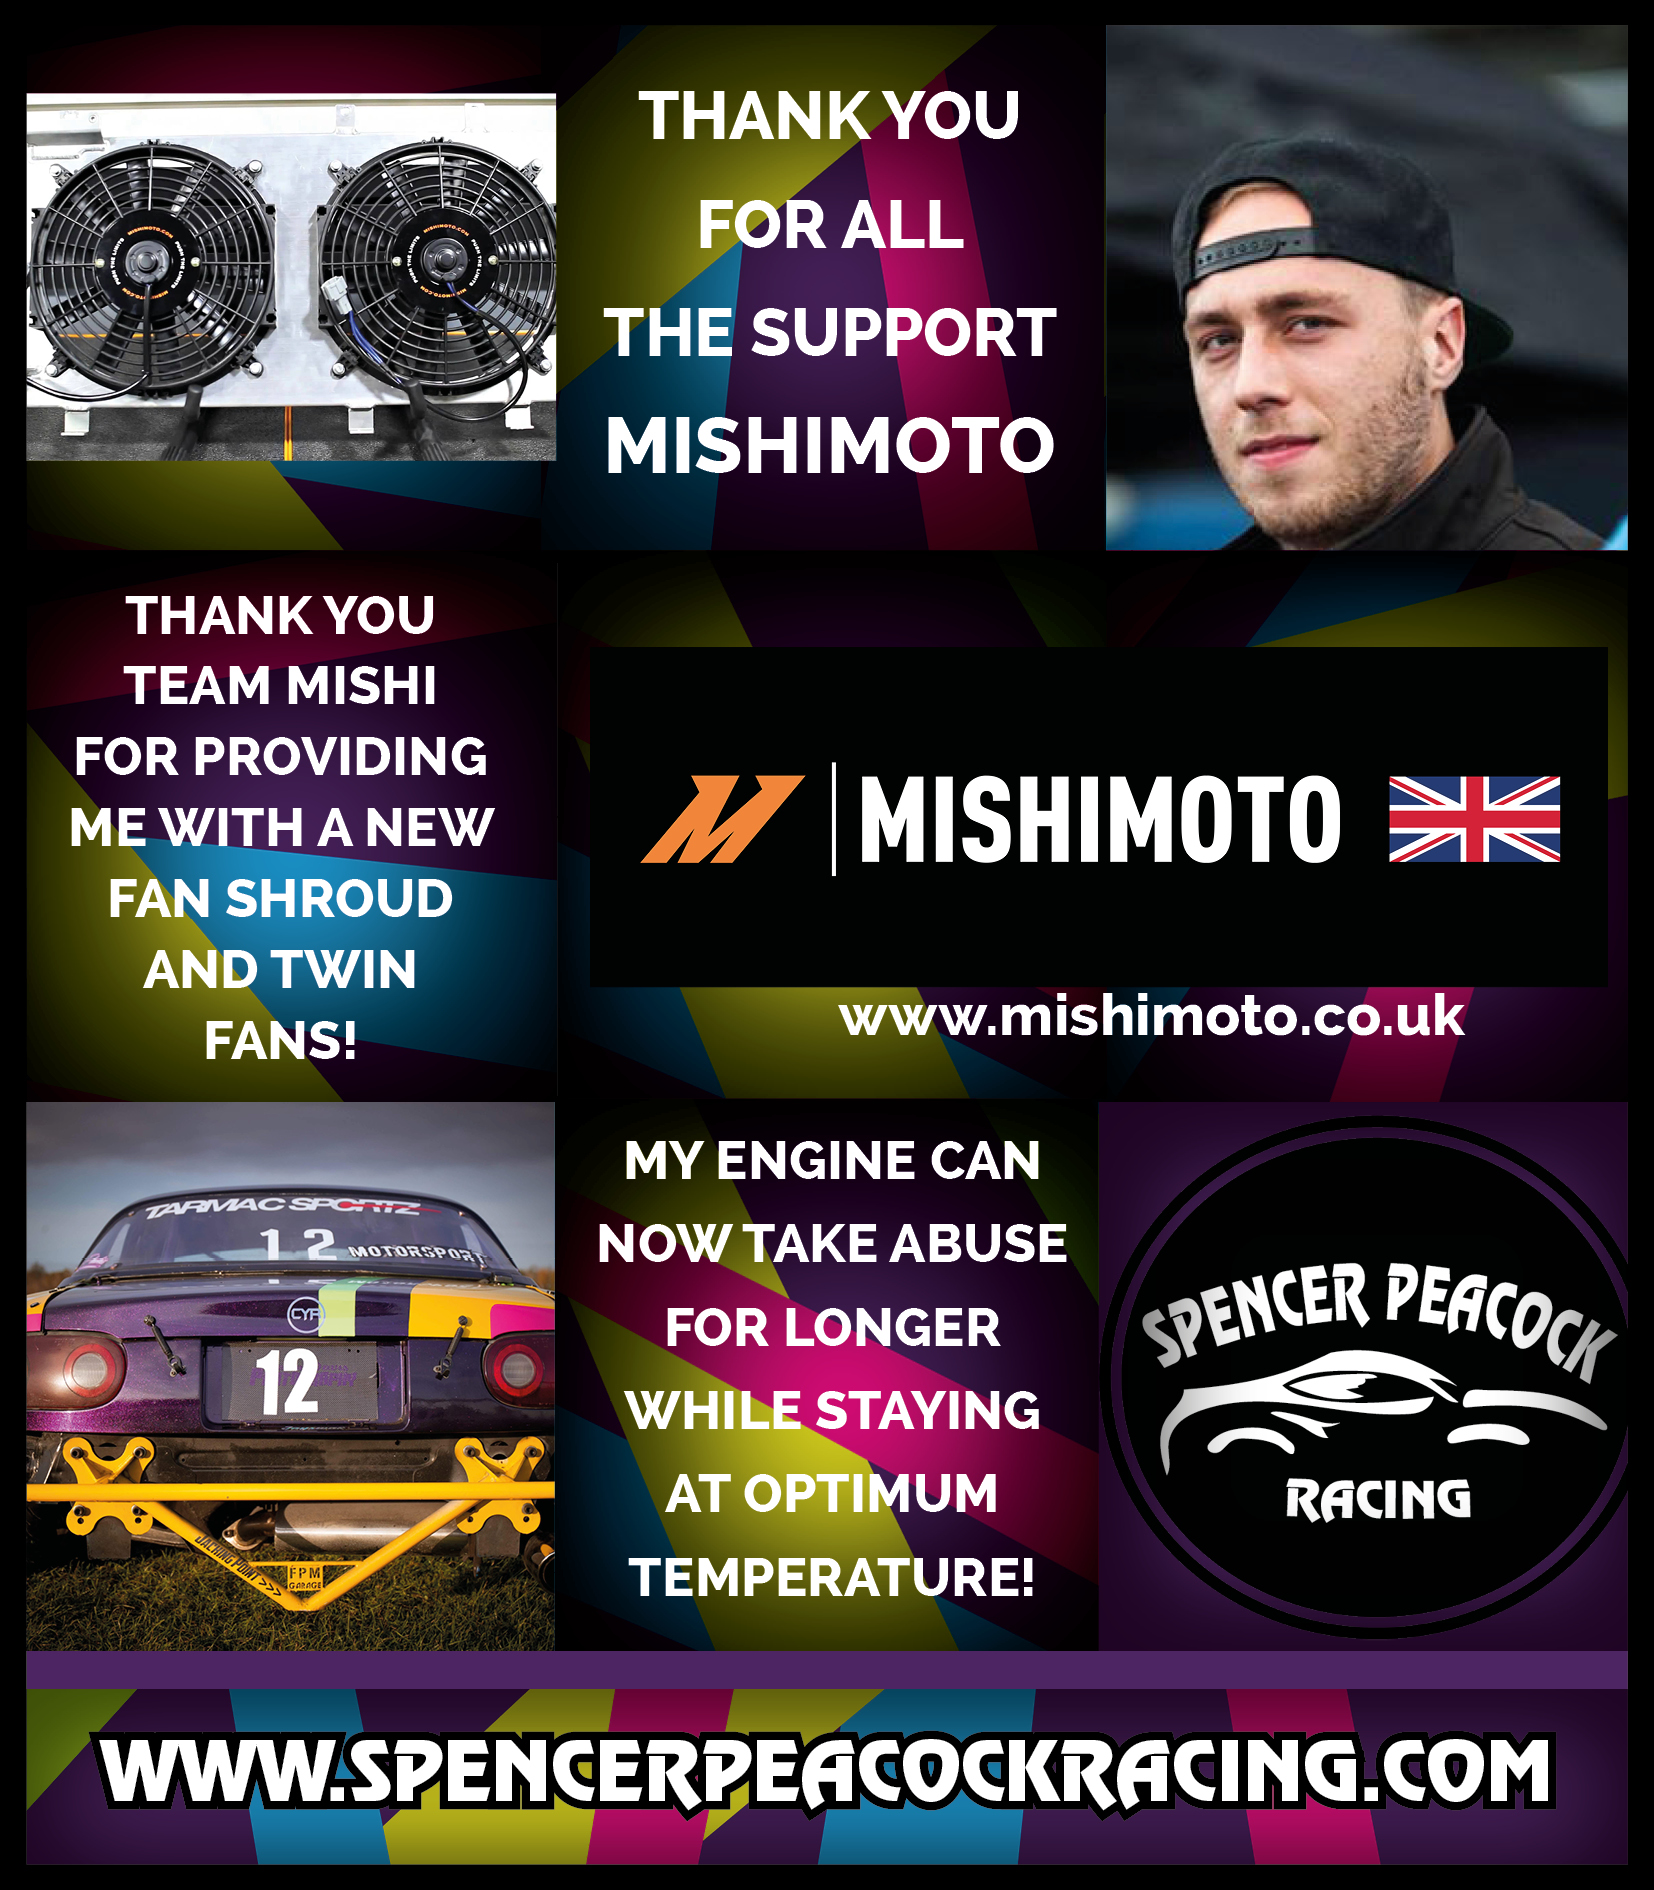 THANK YOU TO MISHIMOTO MARCH 2018